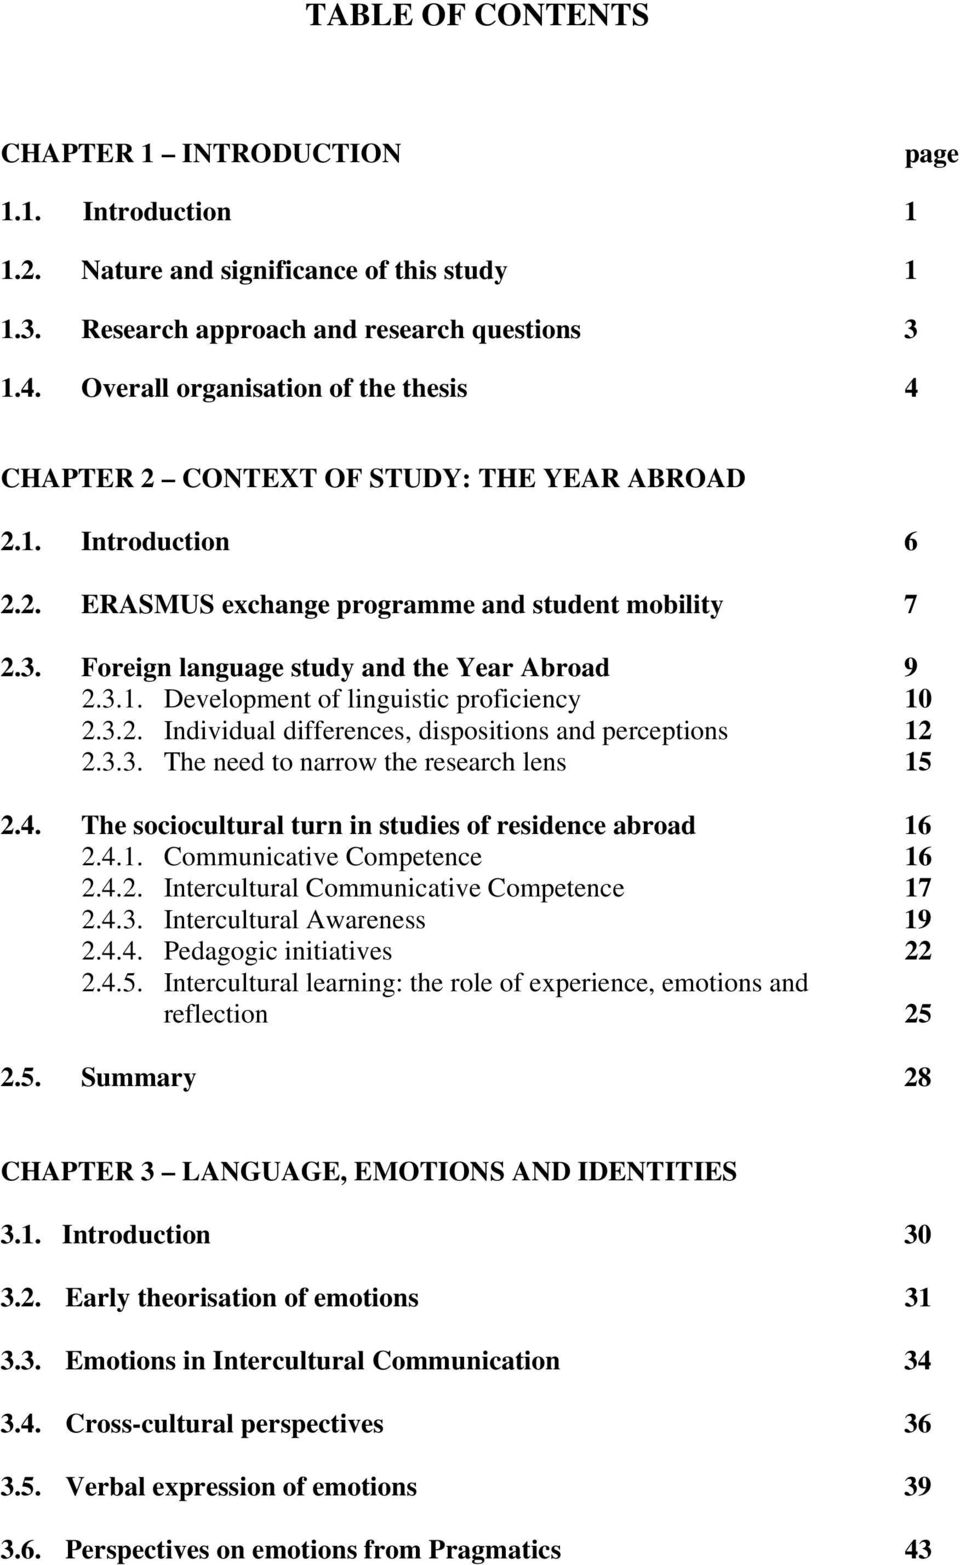 Foreign language study and the Year Abroad 9 2.3.1. Development of linguistic proficiency 10 2.3.2. Individual differences, dispositions and perceptions 12 2.3.3. The need to narrow the research lens 15 2.